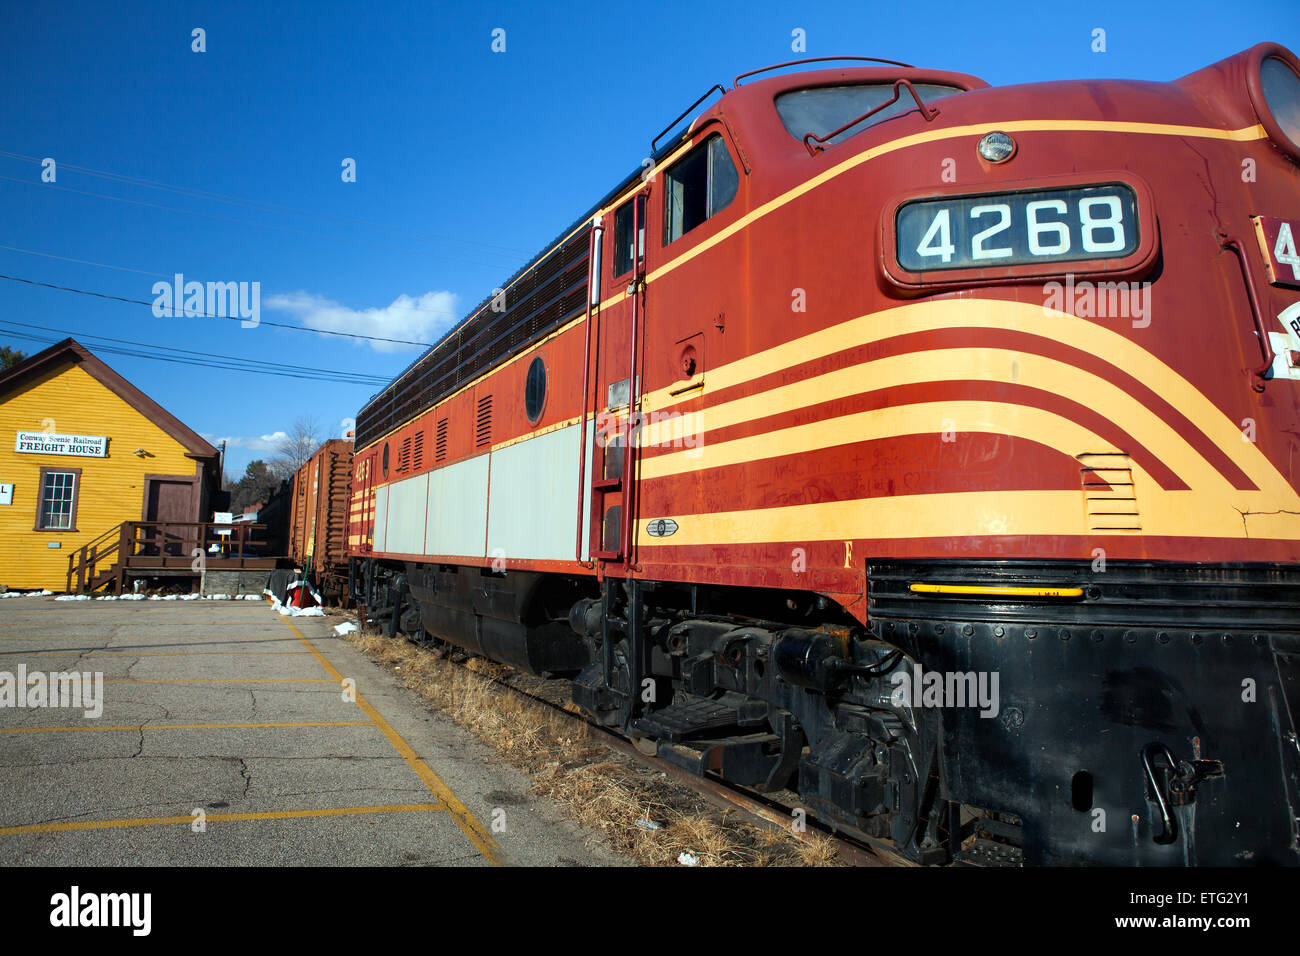 Electro Motive Diesel >> Retired Boston and Maine F7A #4268 diesel train engine the ...